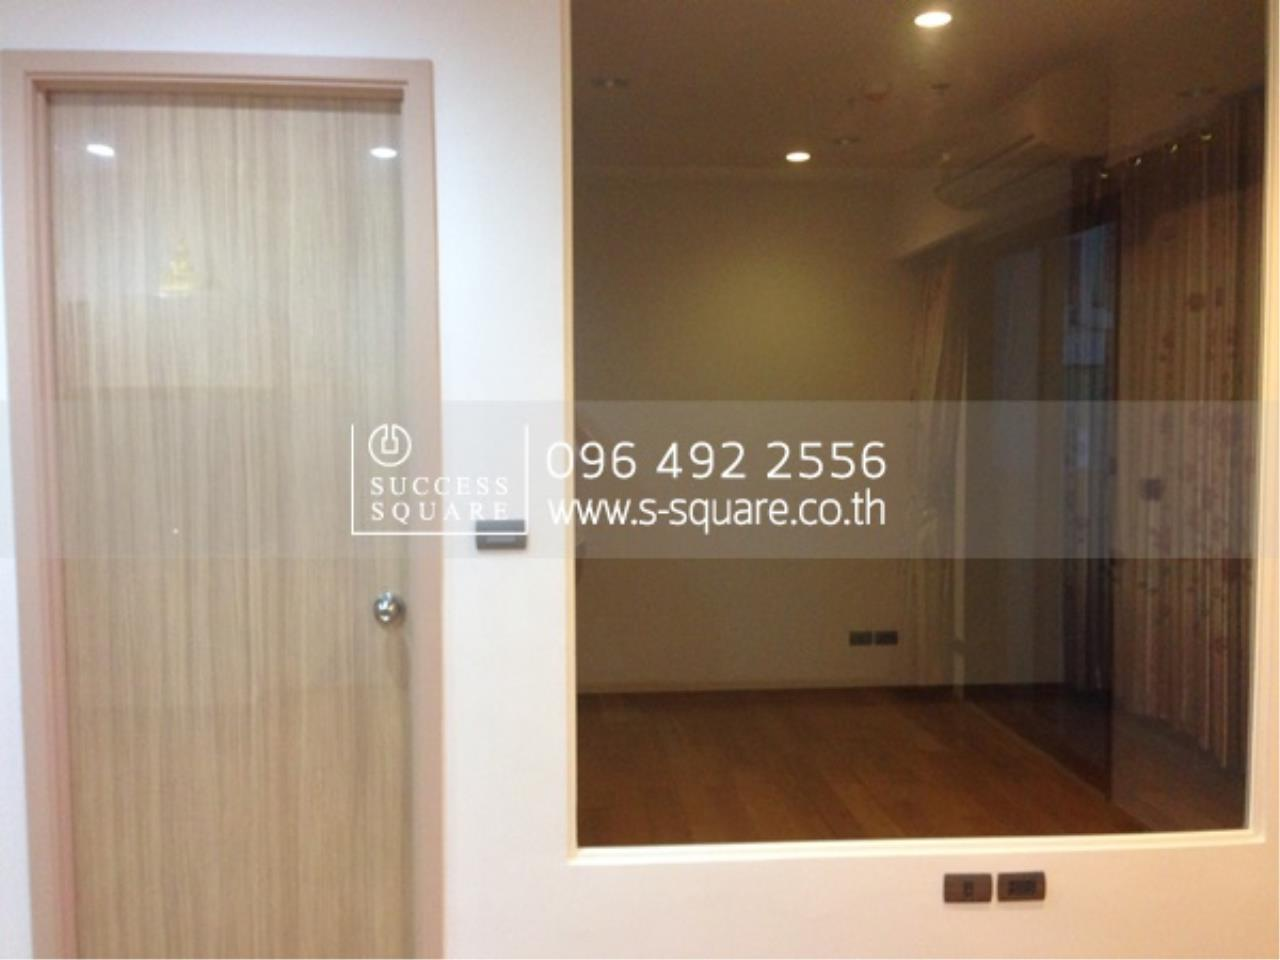 Success Square Agency's Fuse Sathorn-Taksin, Condo For Sale 1 Bedrooms 3